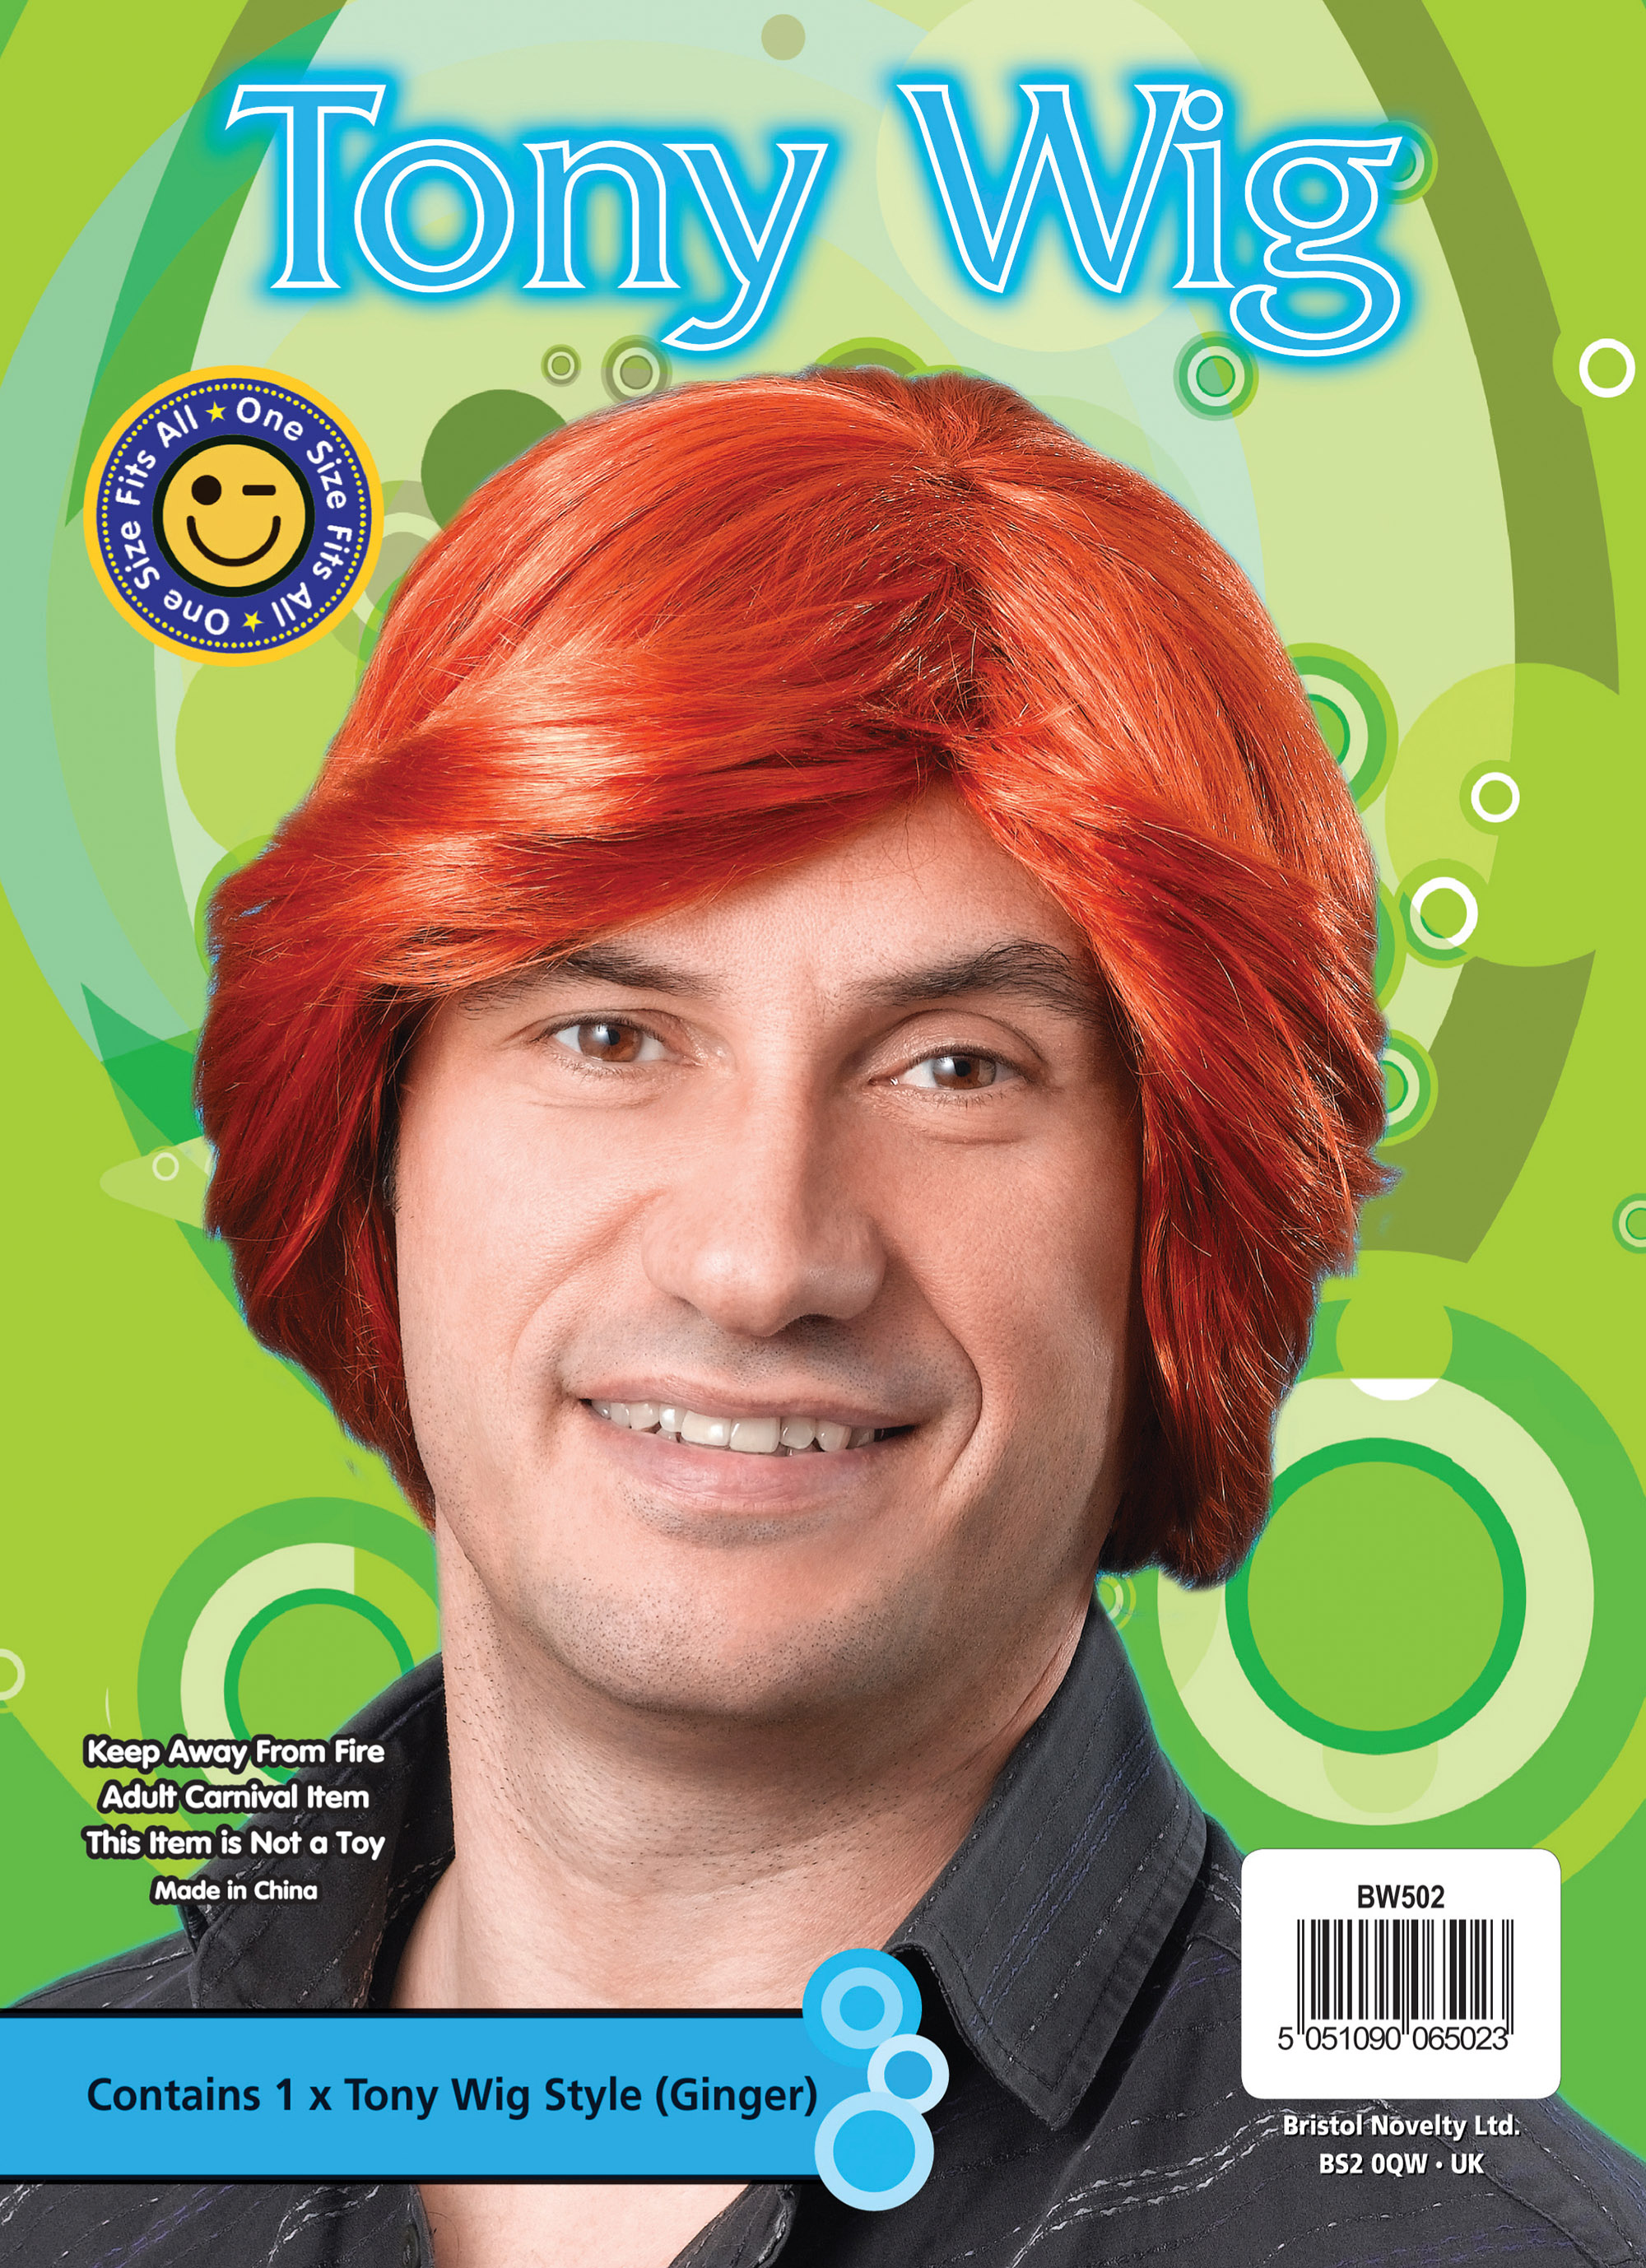 Ginger Tony Wig Bw502 699 Sparx For Fancy Dress Sales And